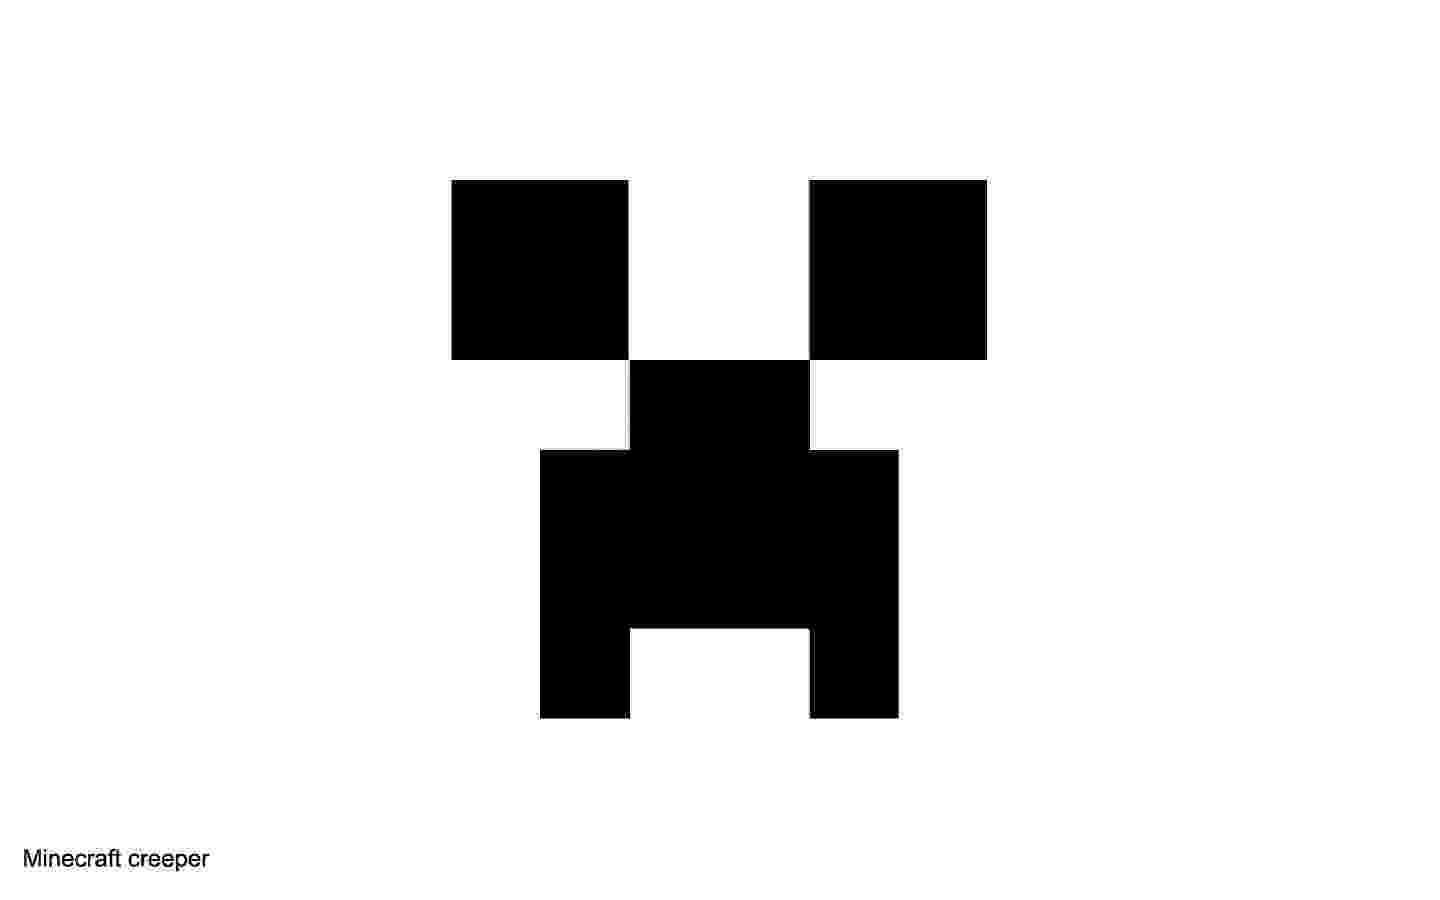 minecraft black and white pictures free minecraft skeleton cliparts download free clip art minecraft and pictures black white